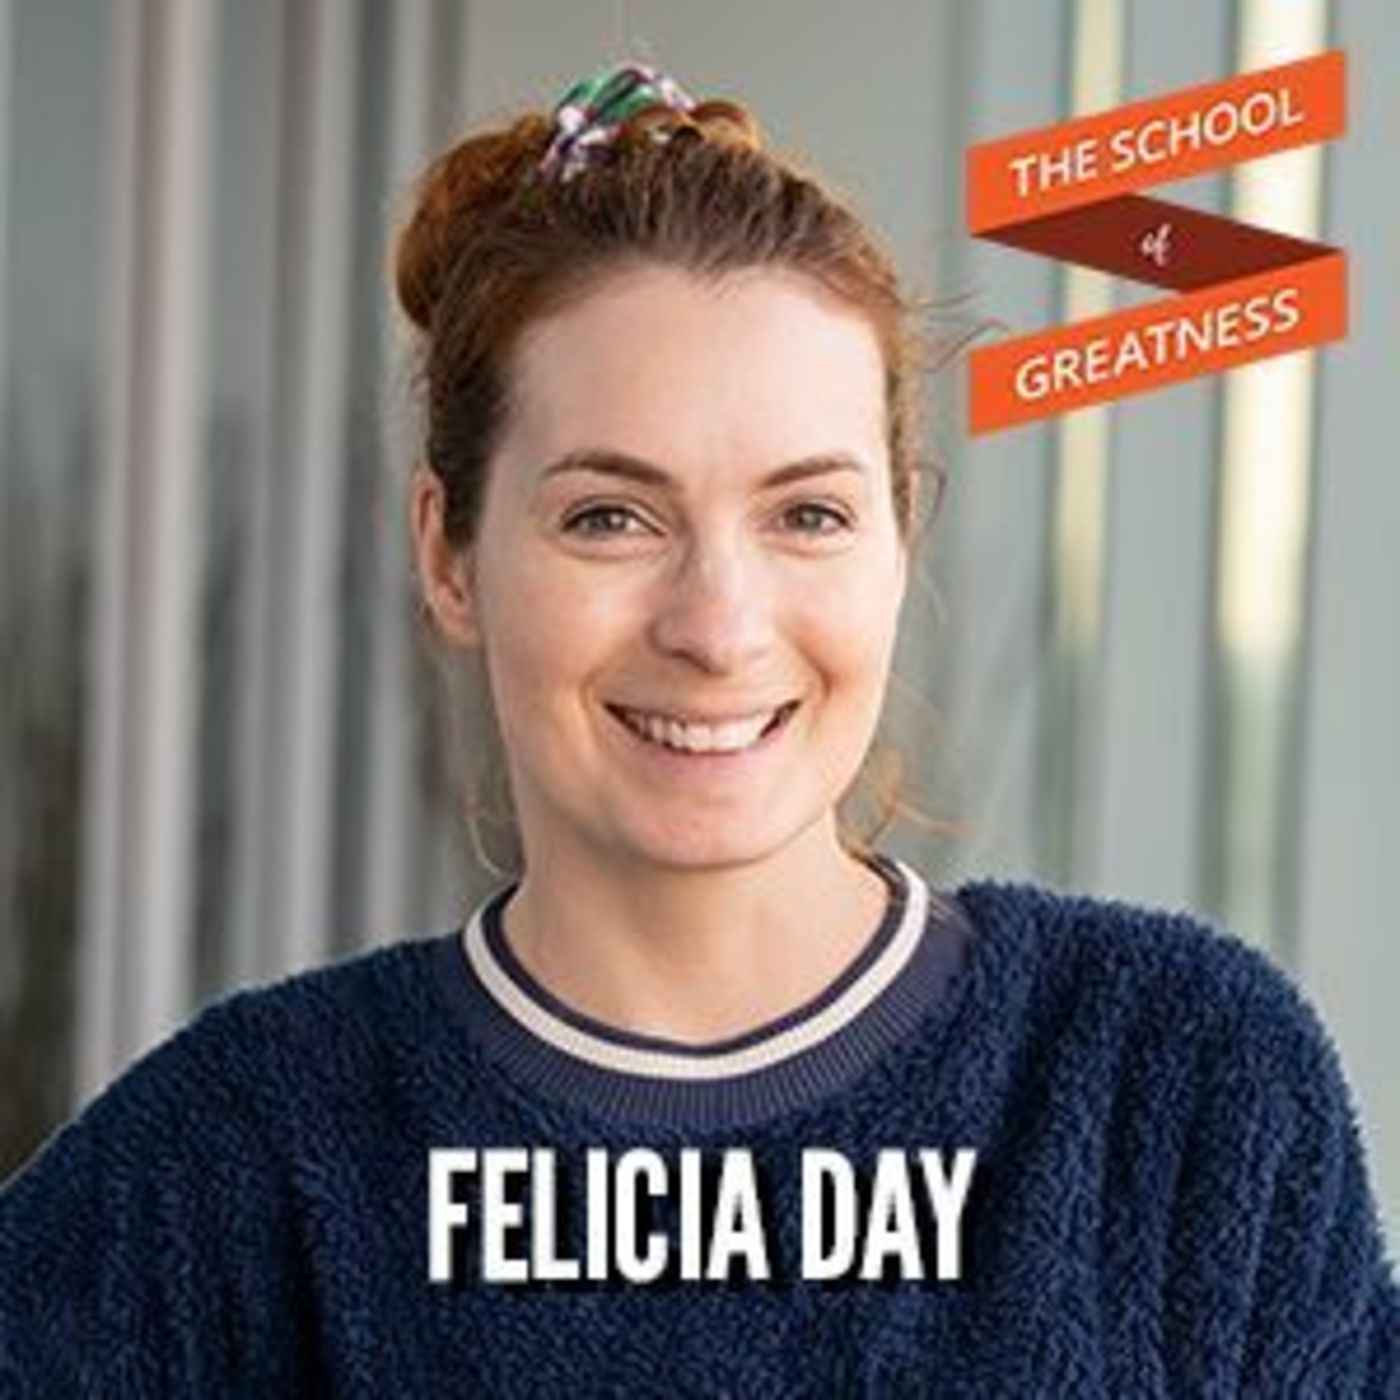 Felicia Day on Unleashing Creativity and Loving Yourself Unconditionally